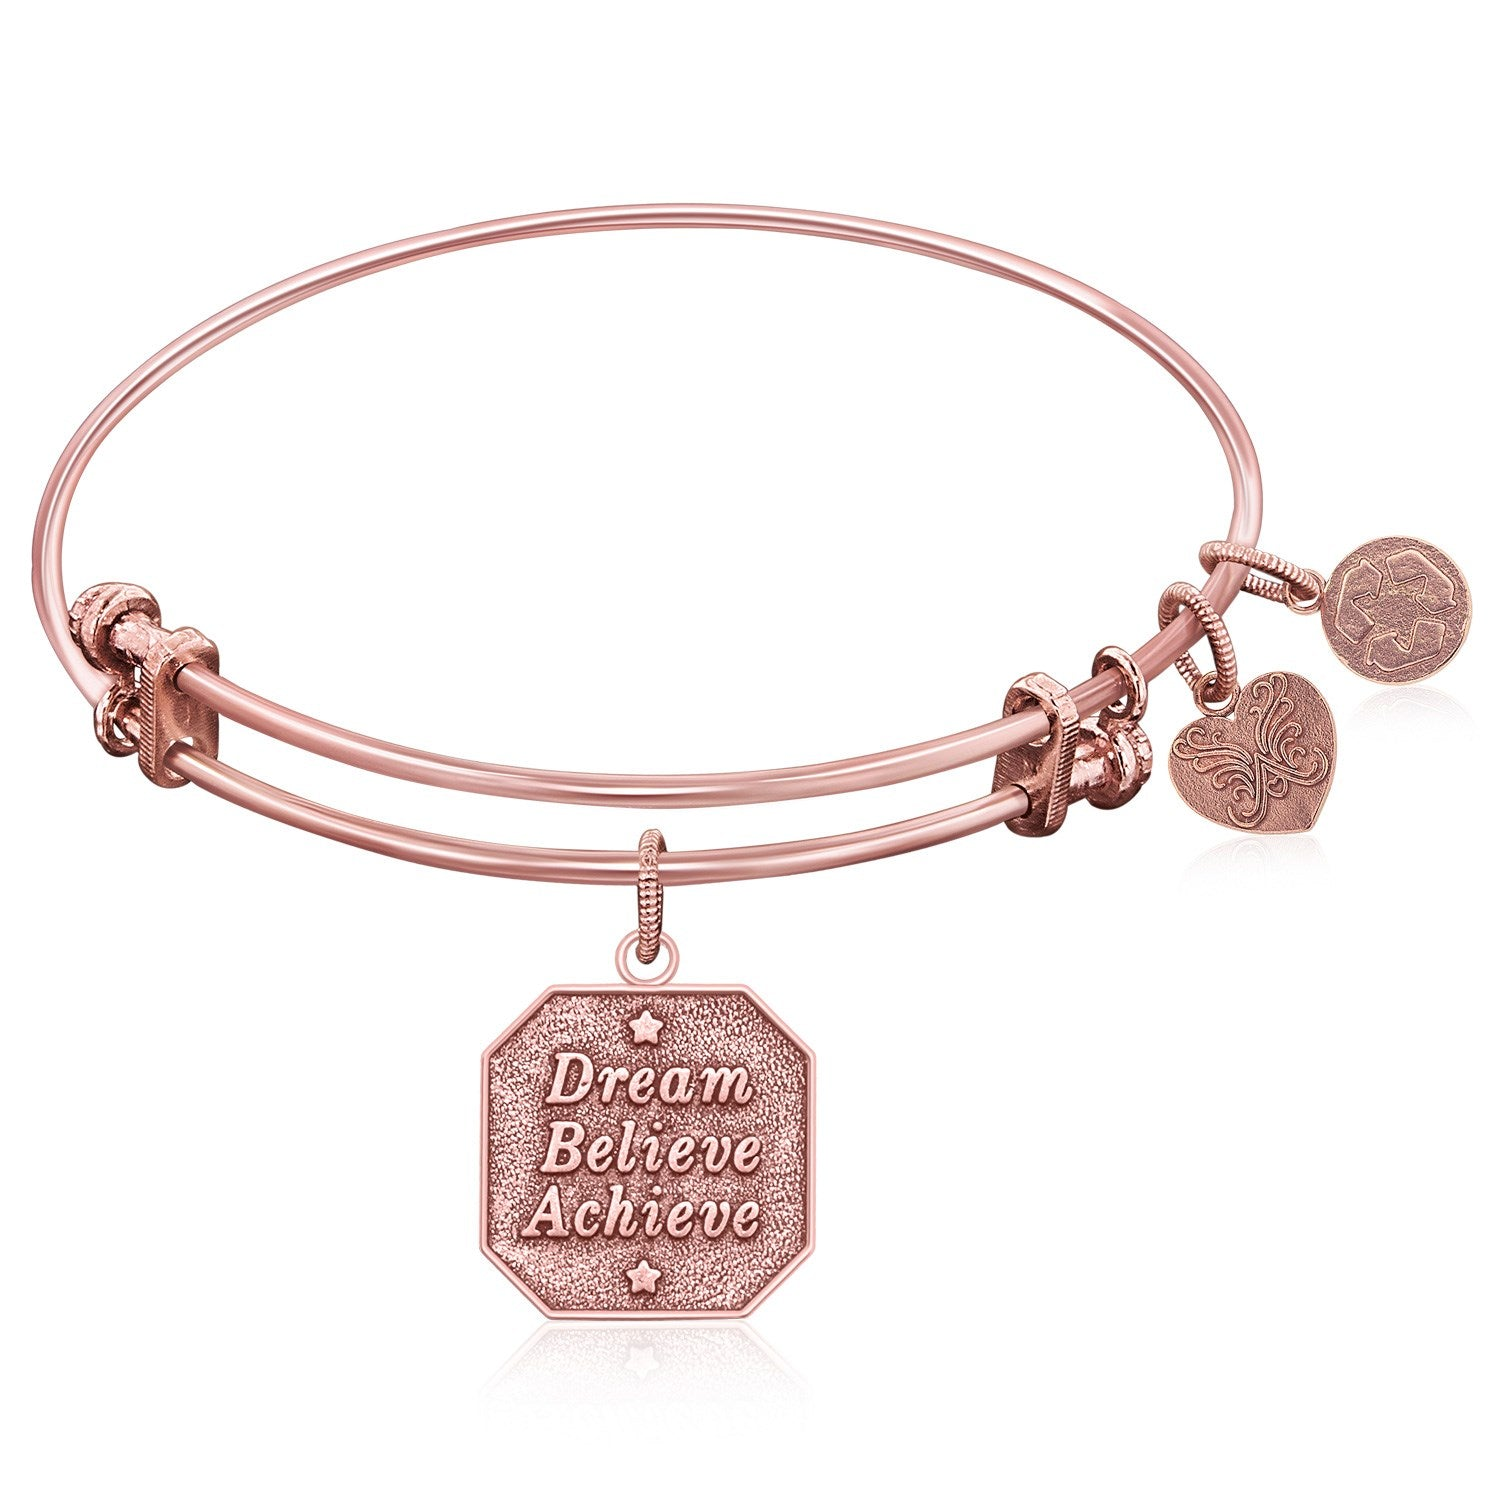 Expandable Bangle in Pink Tone Brass with Dream Believe Achieve Symbol